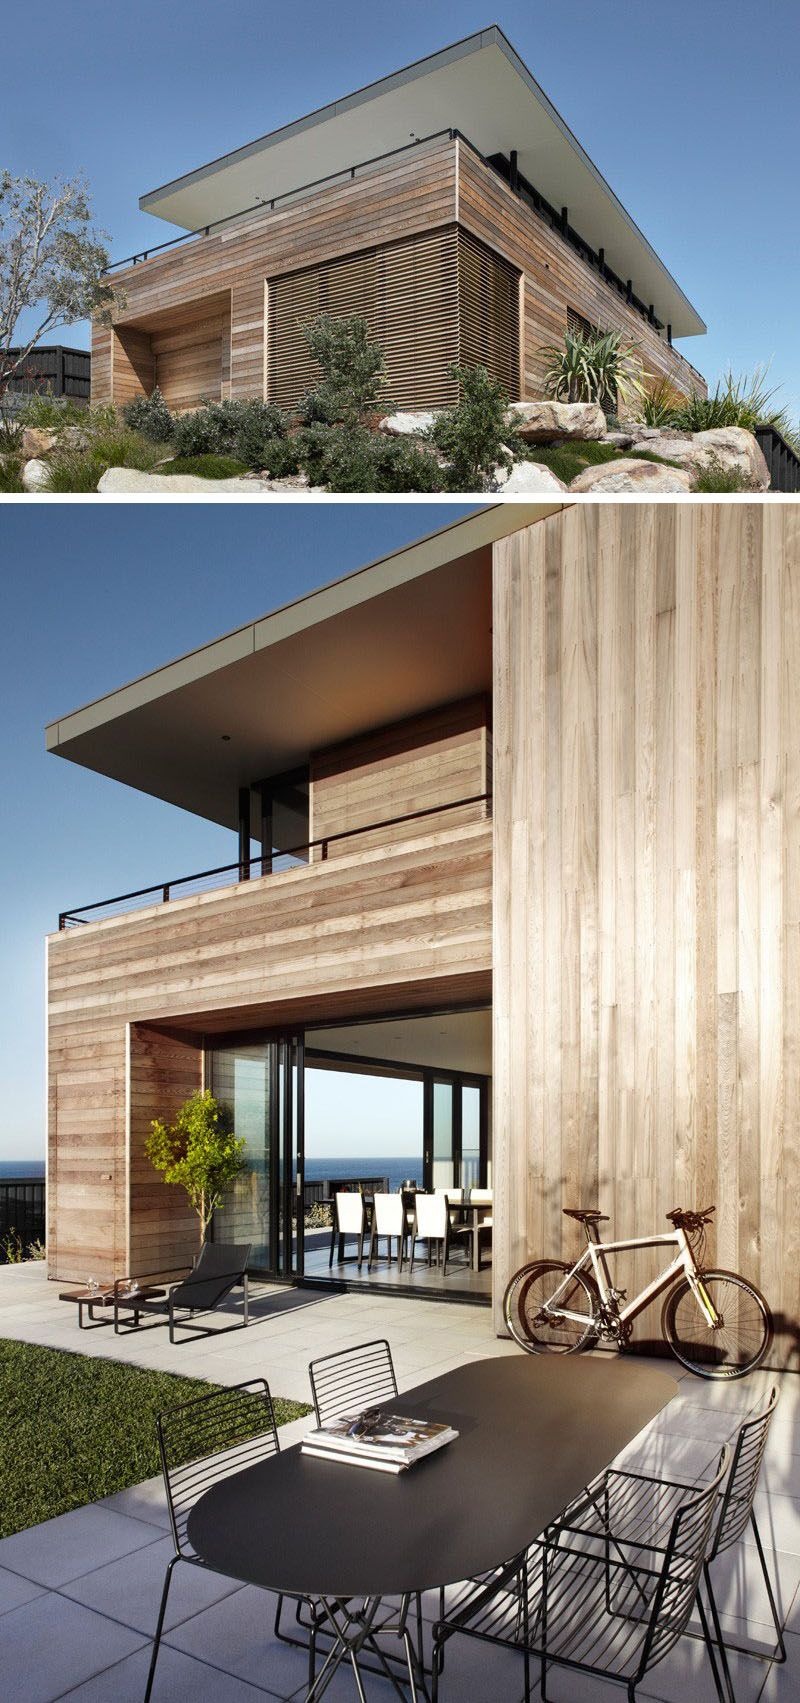 14 Examples Of Modern Beach Houses // Light Wood Paneling Covers The  Exterior Of The. Modern House PlansModern ...